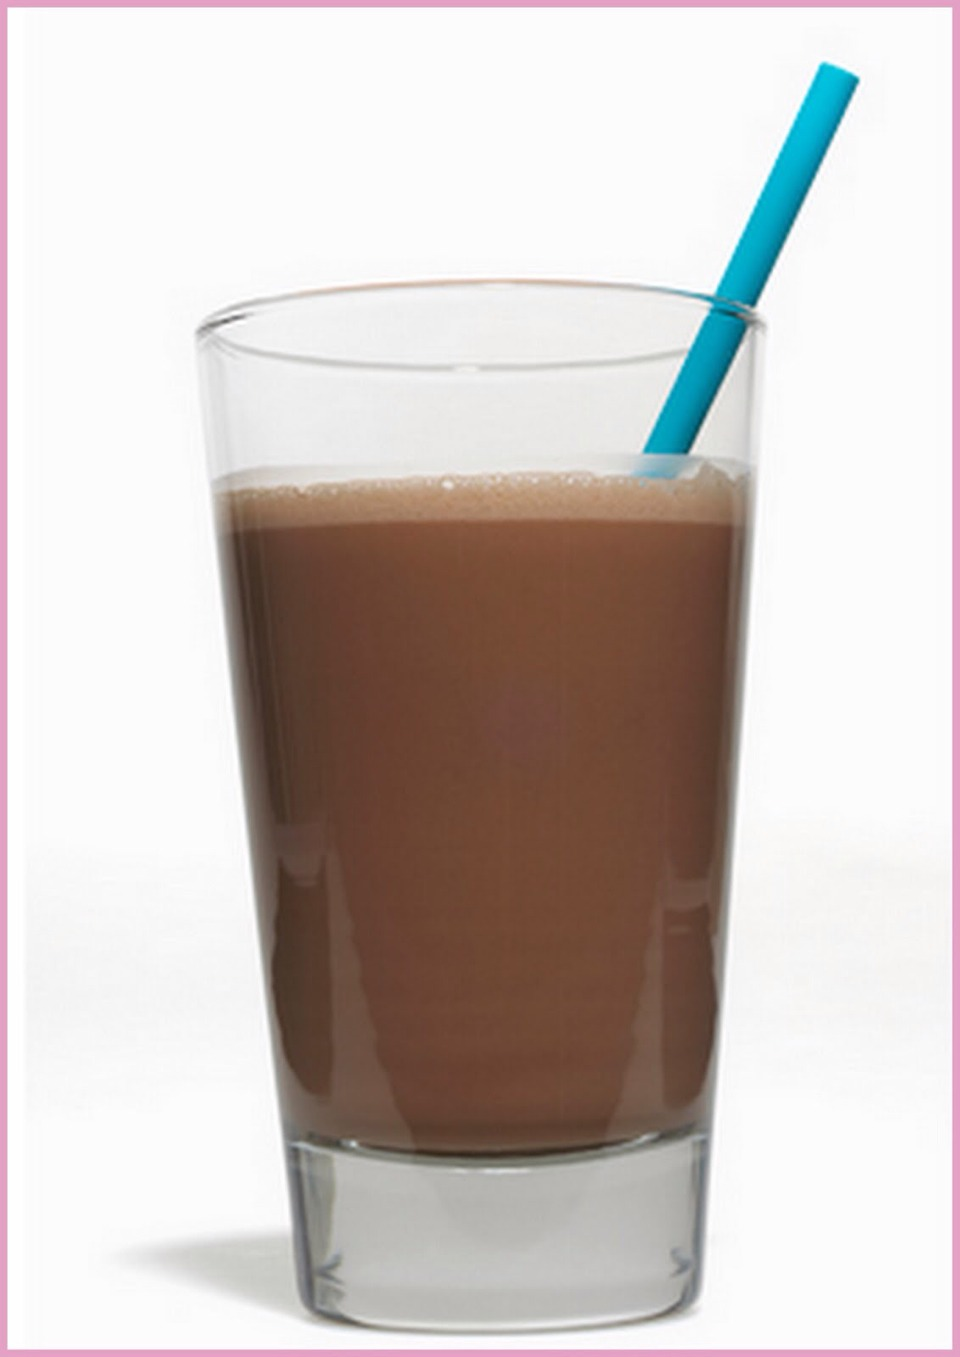 Chocolate milk :) -6 ounces if skim milk  -2 teaspoons of chocolate syrup